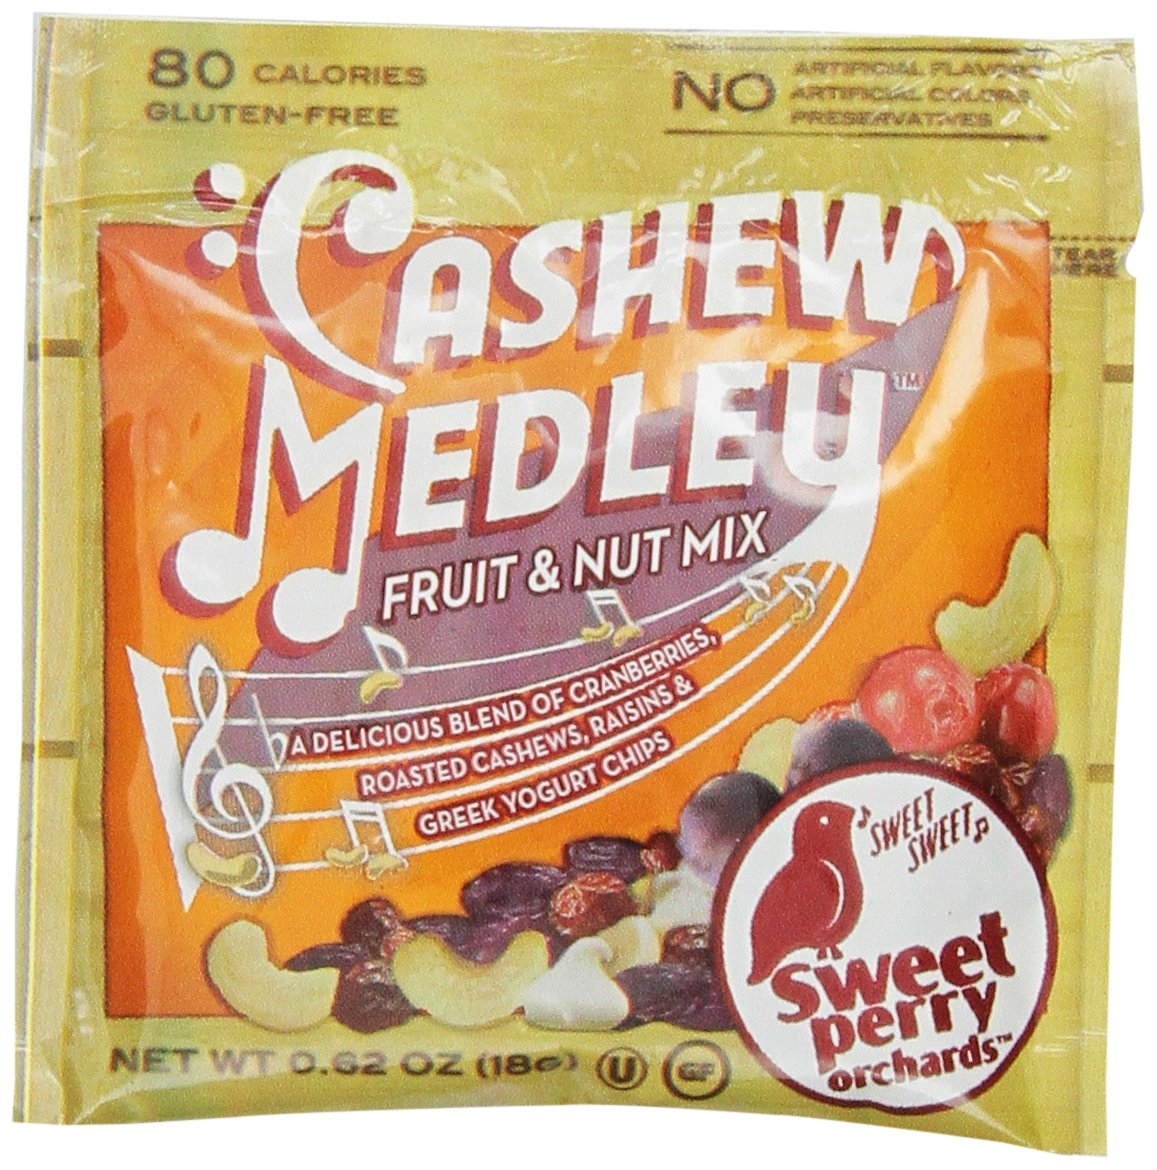 GoPicnic Sweet Perry Orchards Cashew Medley Fruit & Nut Mix, Snack Packs, 10 Count